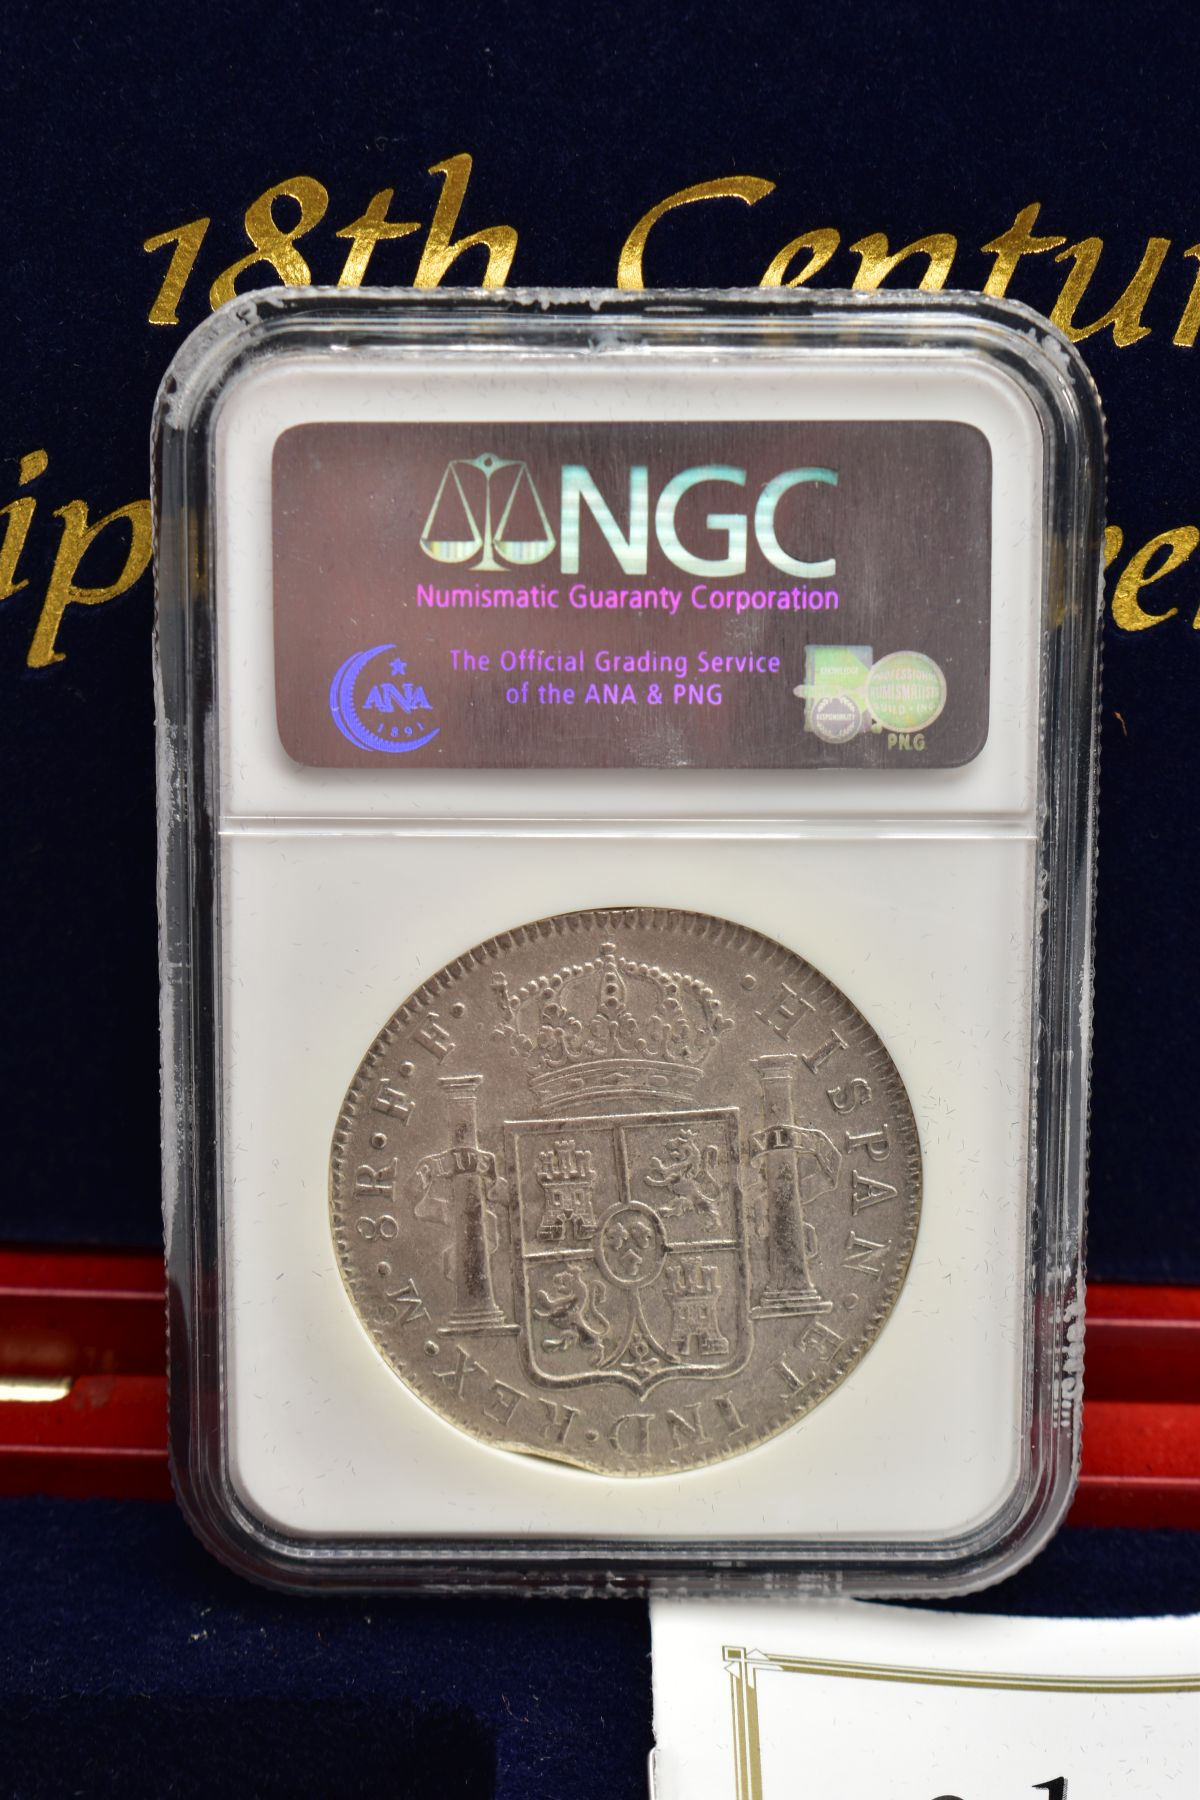 A SLABBED NGC SHIPWRECK CERTIFICATION OF A 18TH CENTURY 1782 SILVER EIGHT REALES COIN with - Image 3 of 3